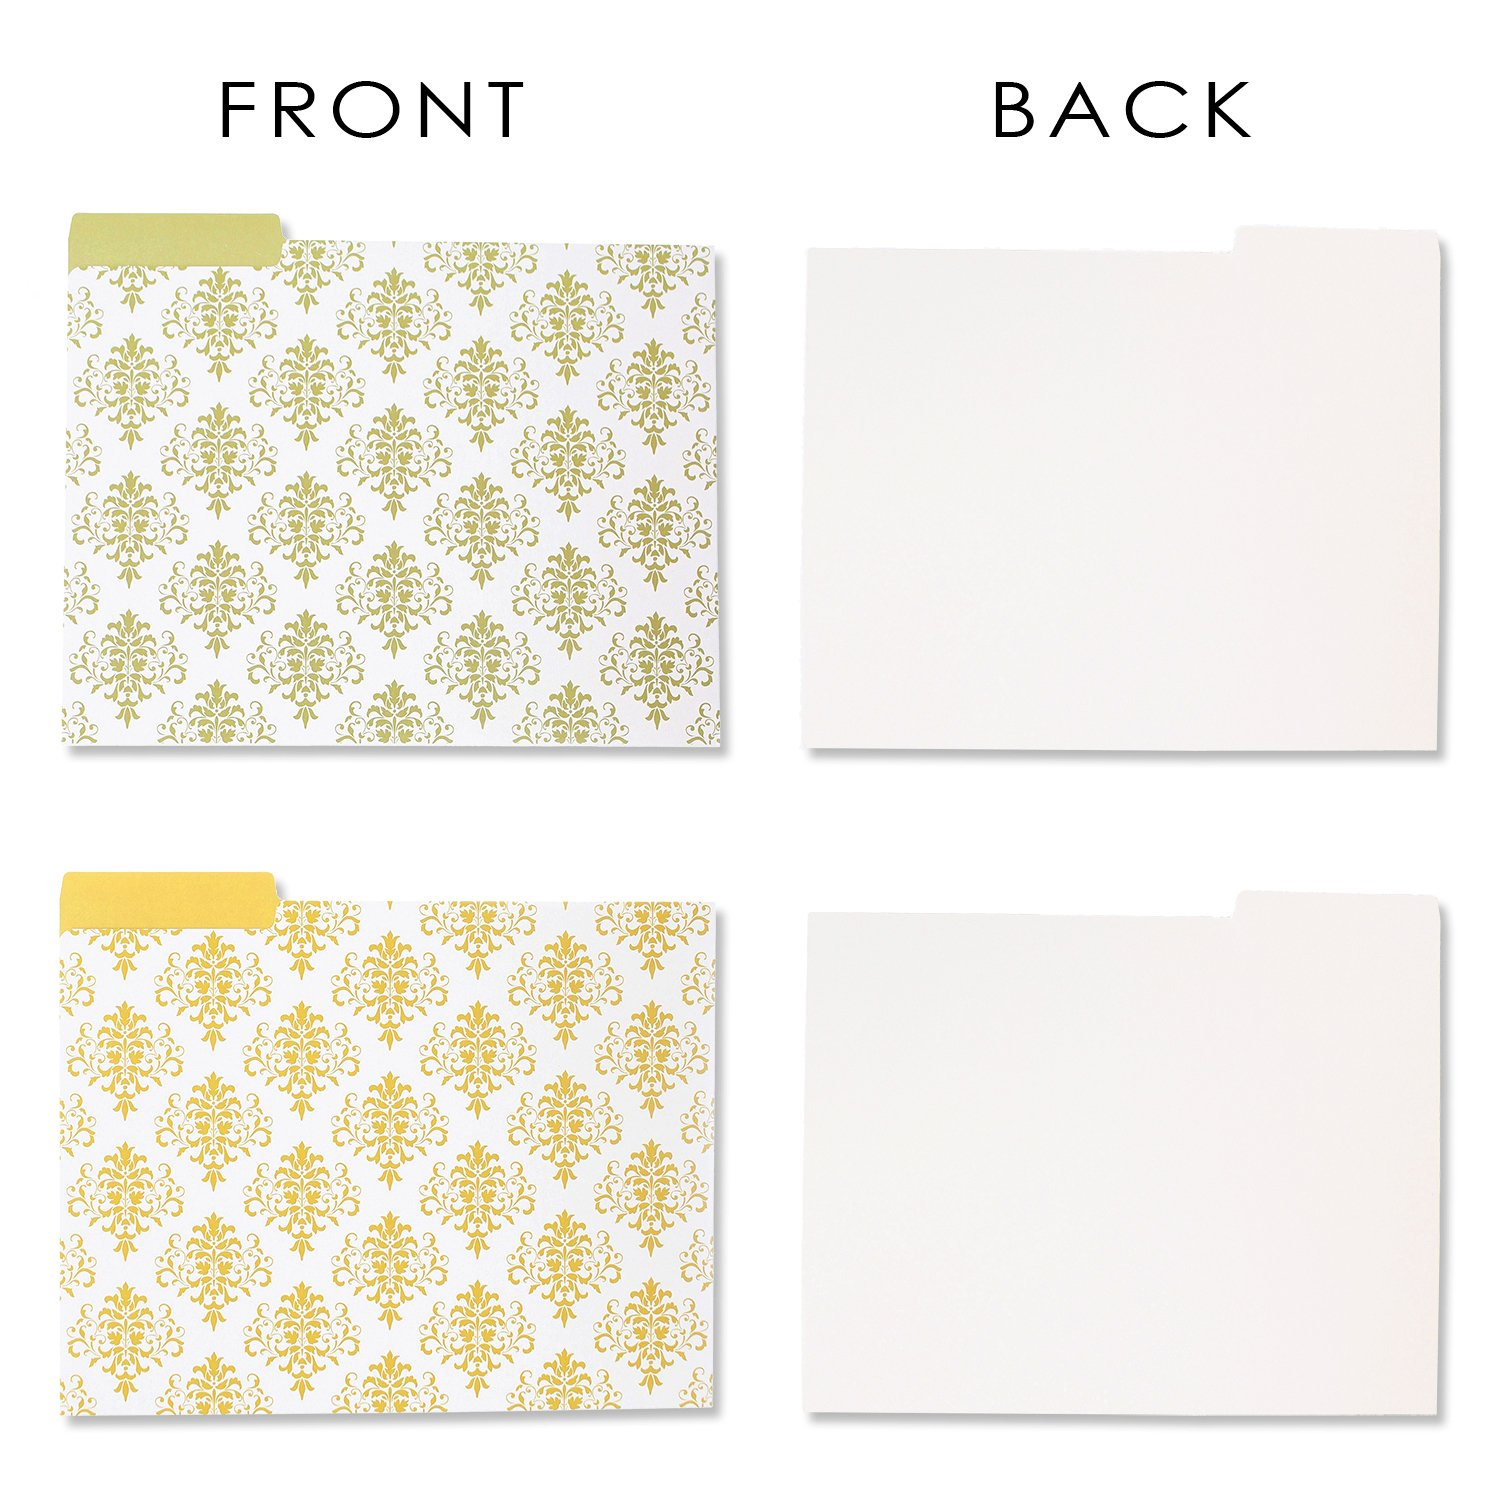 Decorative File Folders - 12-Count Colored File Folders Letter Size, 1/3-Cut Tabs, Includes 6 Cute Damask Patterns, 2 of each, File Filing Organizers, 9.5 x 11.5 Inches by Best Paper Greetings (Image #5)